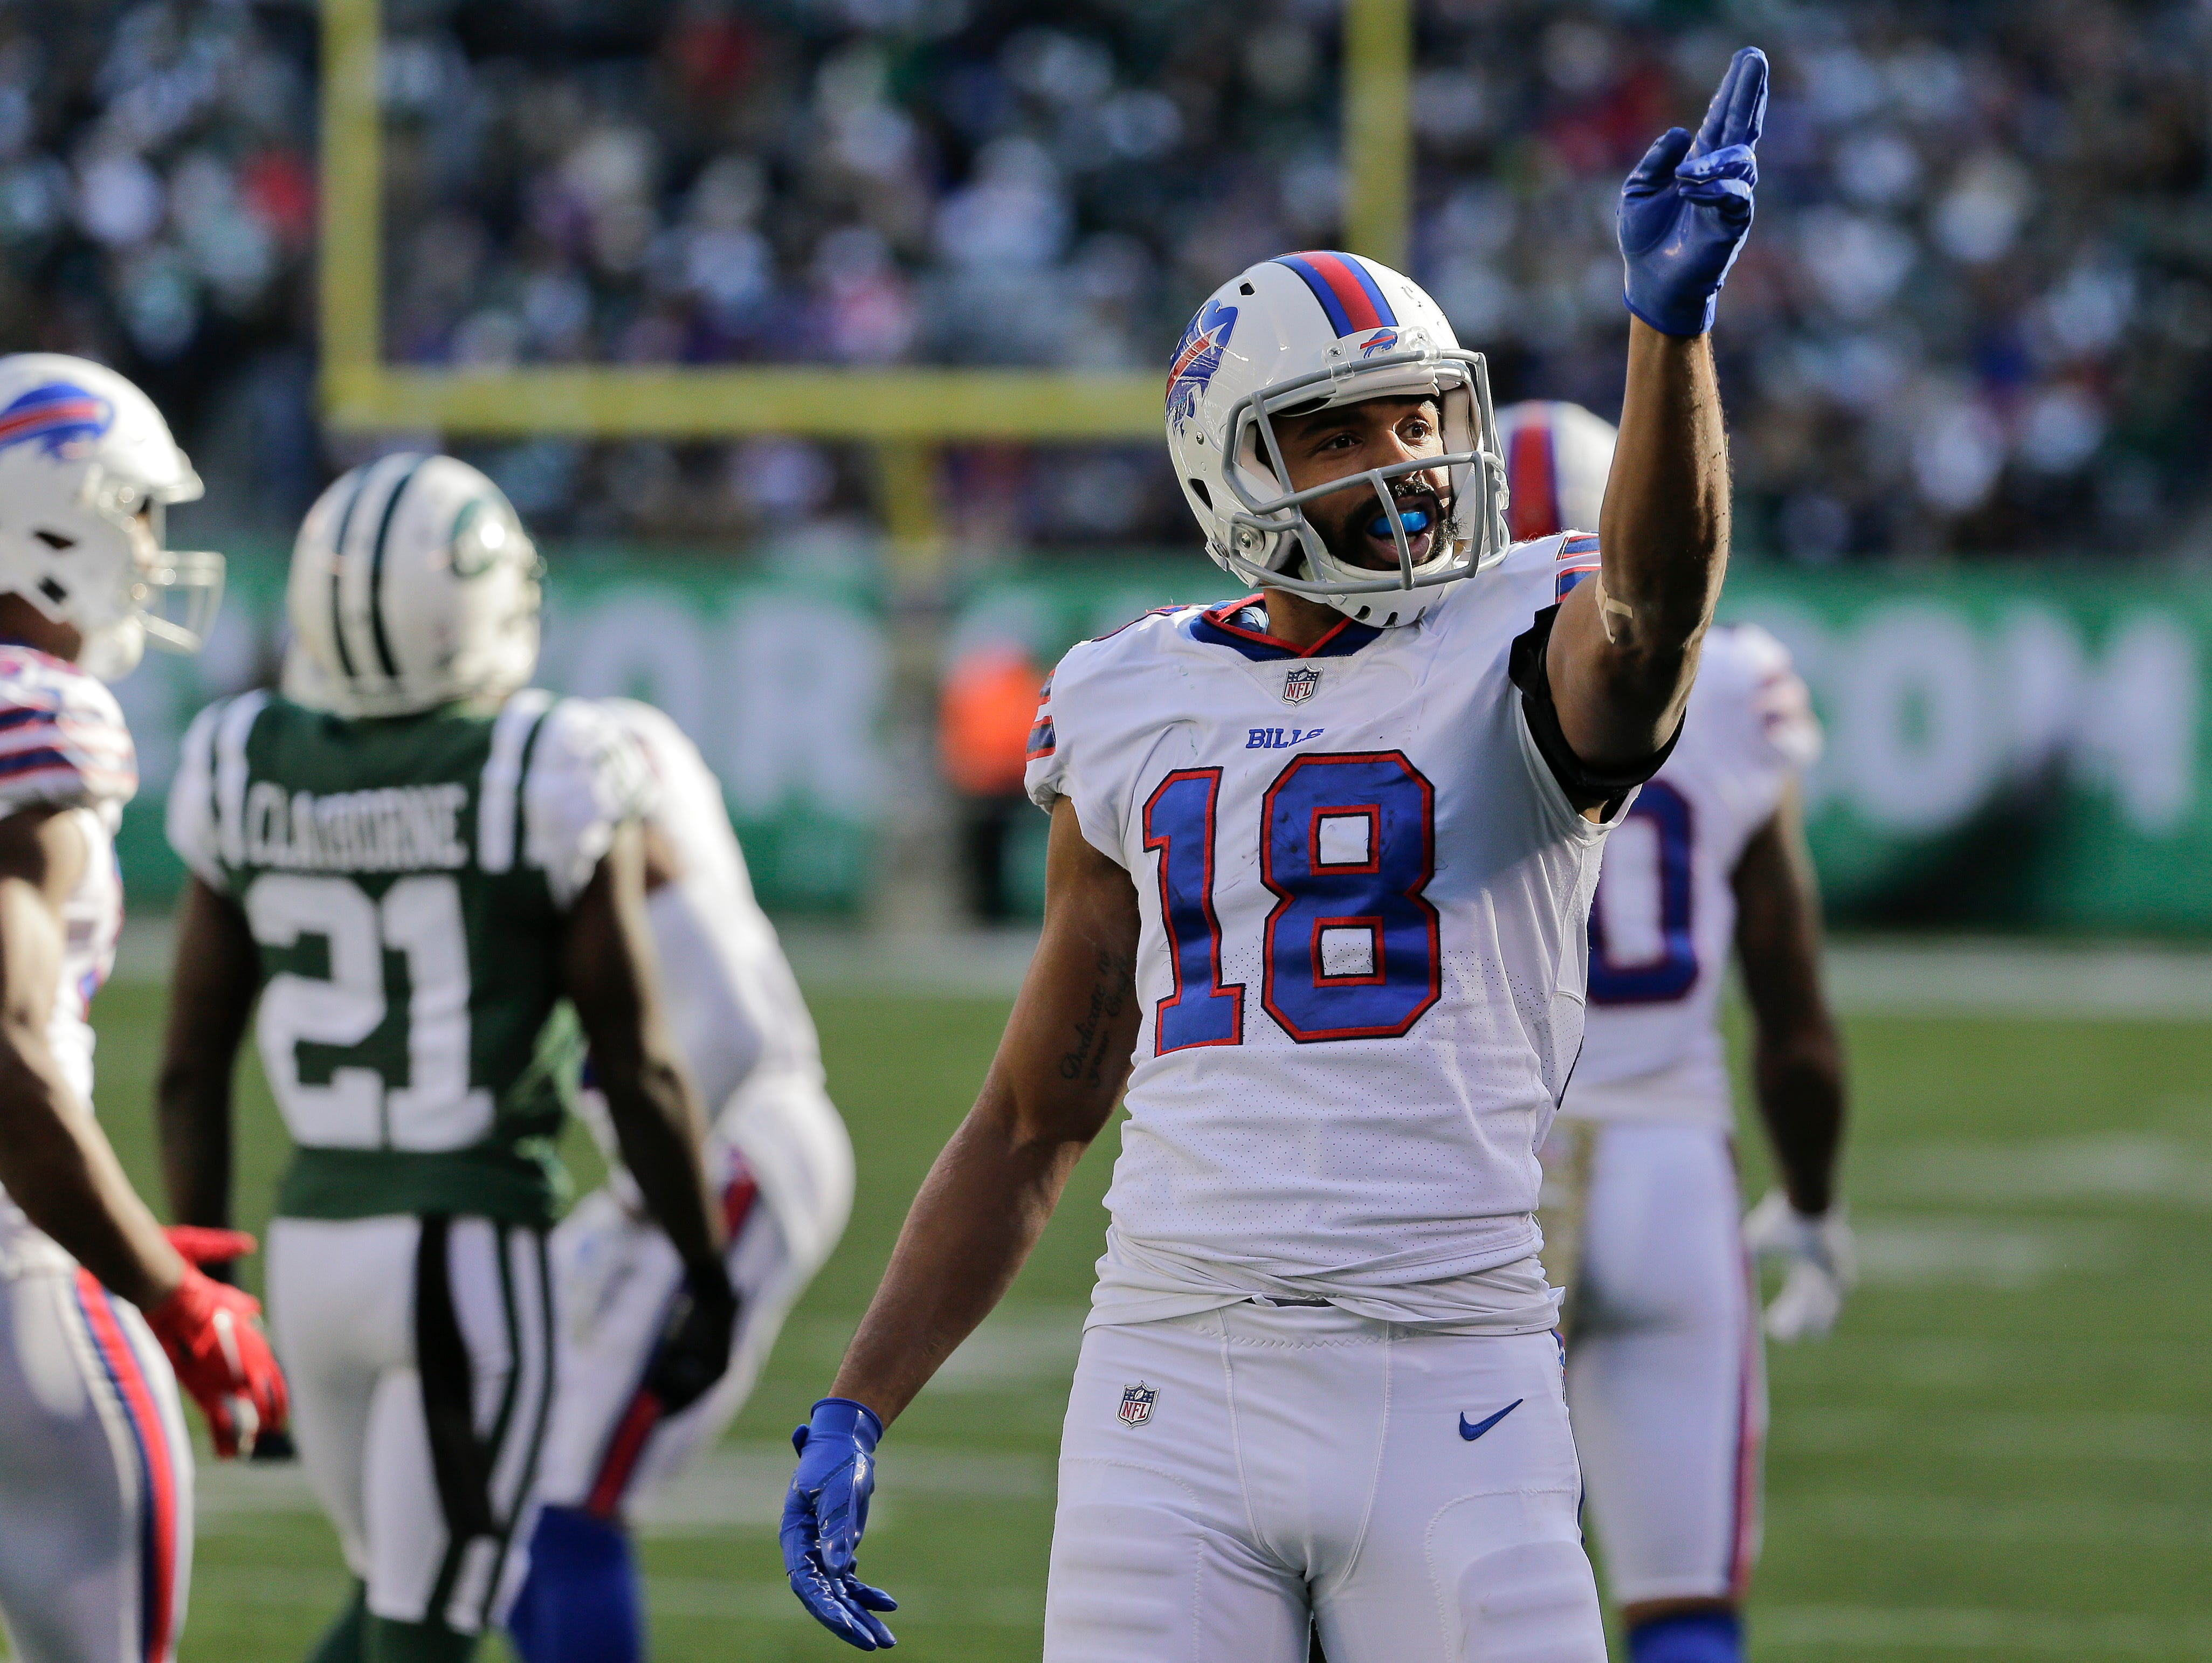 Buffalo Bills wide receiver Andre Holmes (18) reacts after a first down against the New York Jets during the second quarter of an NFL football game, Sunday, Nov. 11, 2018, in East Rutherford, N.J. (AP Photo/Seth Wenig)